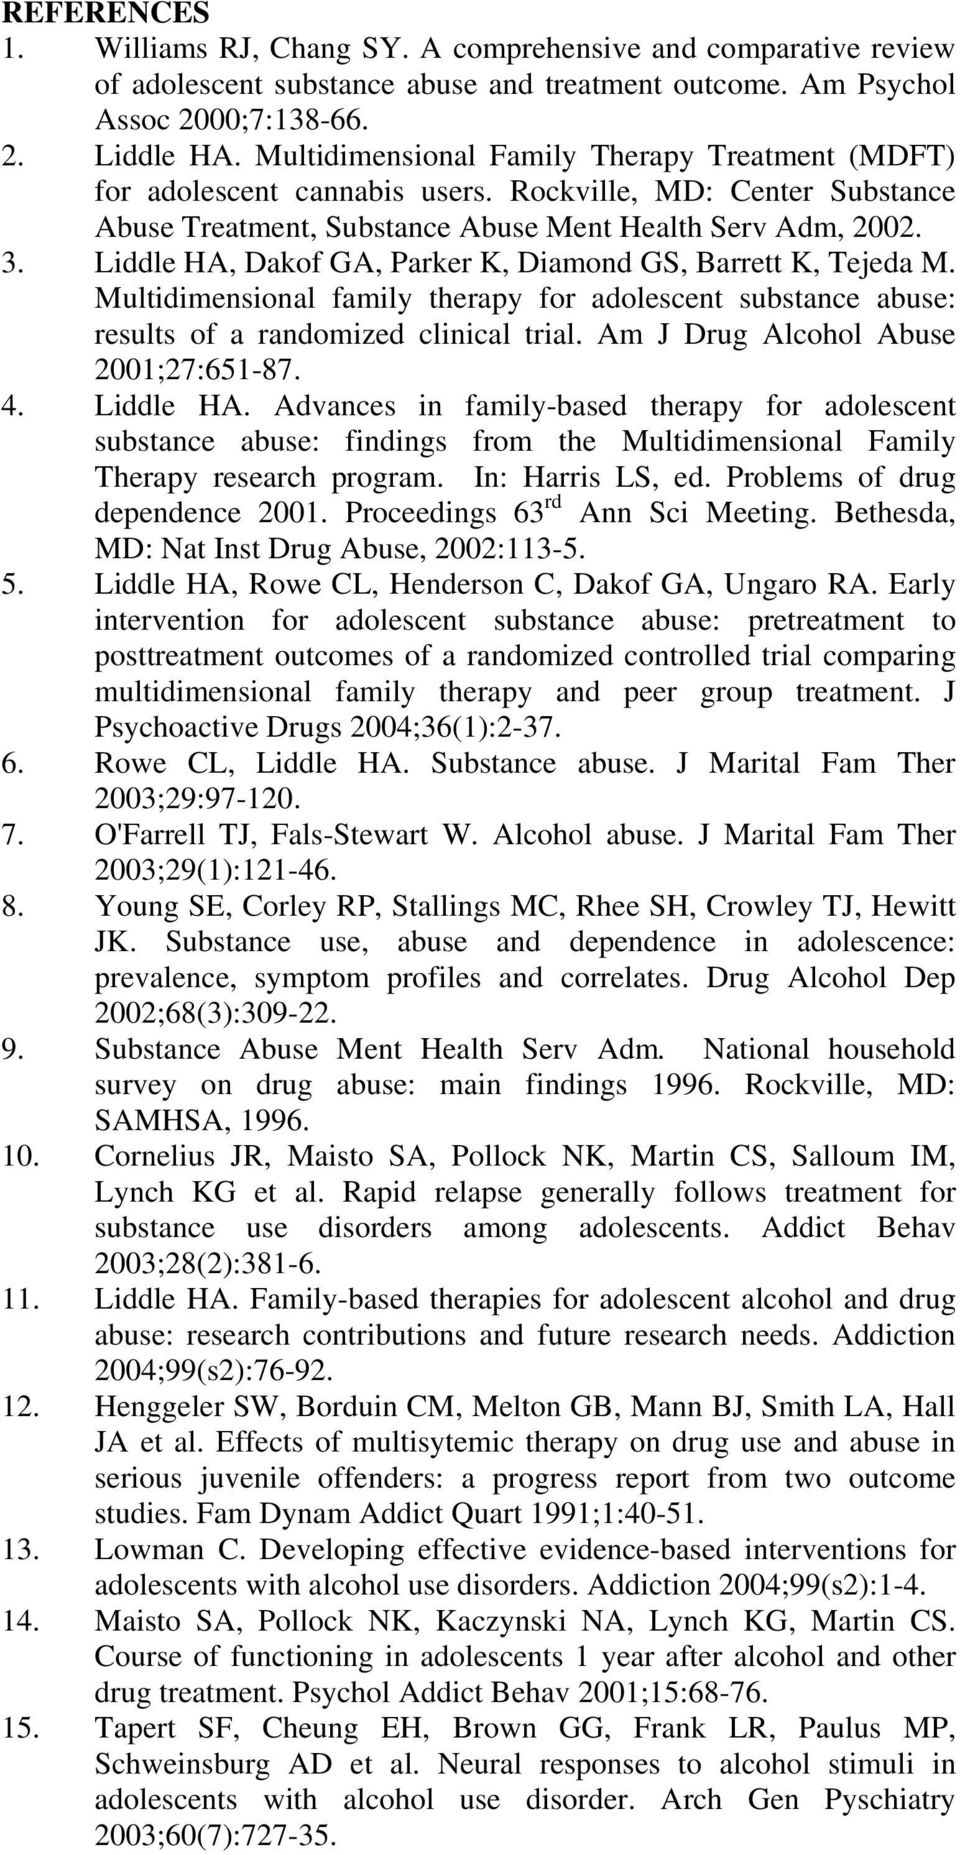 Liddle HA, Dakof GA, Parker K, Diamond GS, Barrett K, Tejeda M. Multidimensional family therapy for adolescent substance abuse: results of a randomized clinical trial.